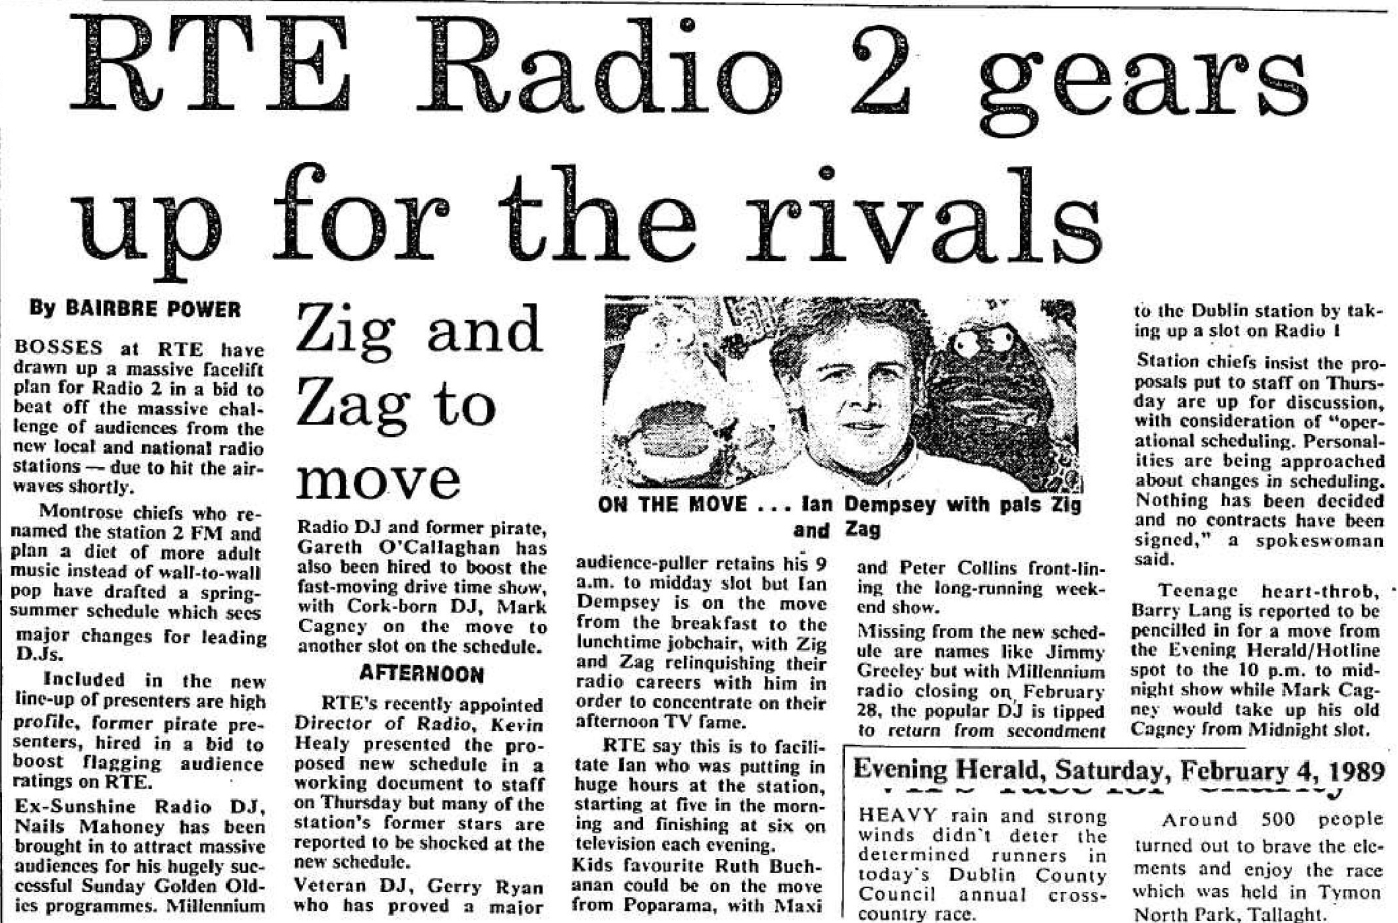 RTÉ Radio 2 gears up for the rivals was a headline from The Evening Herald dated February 4th 1989.